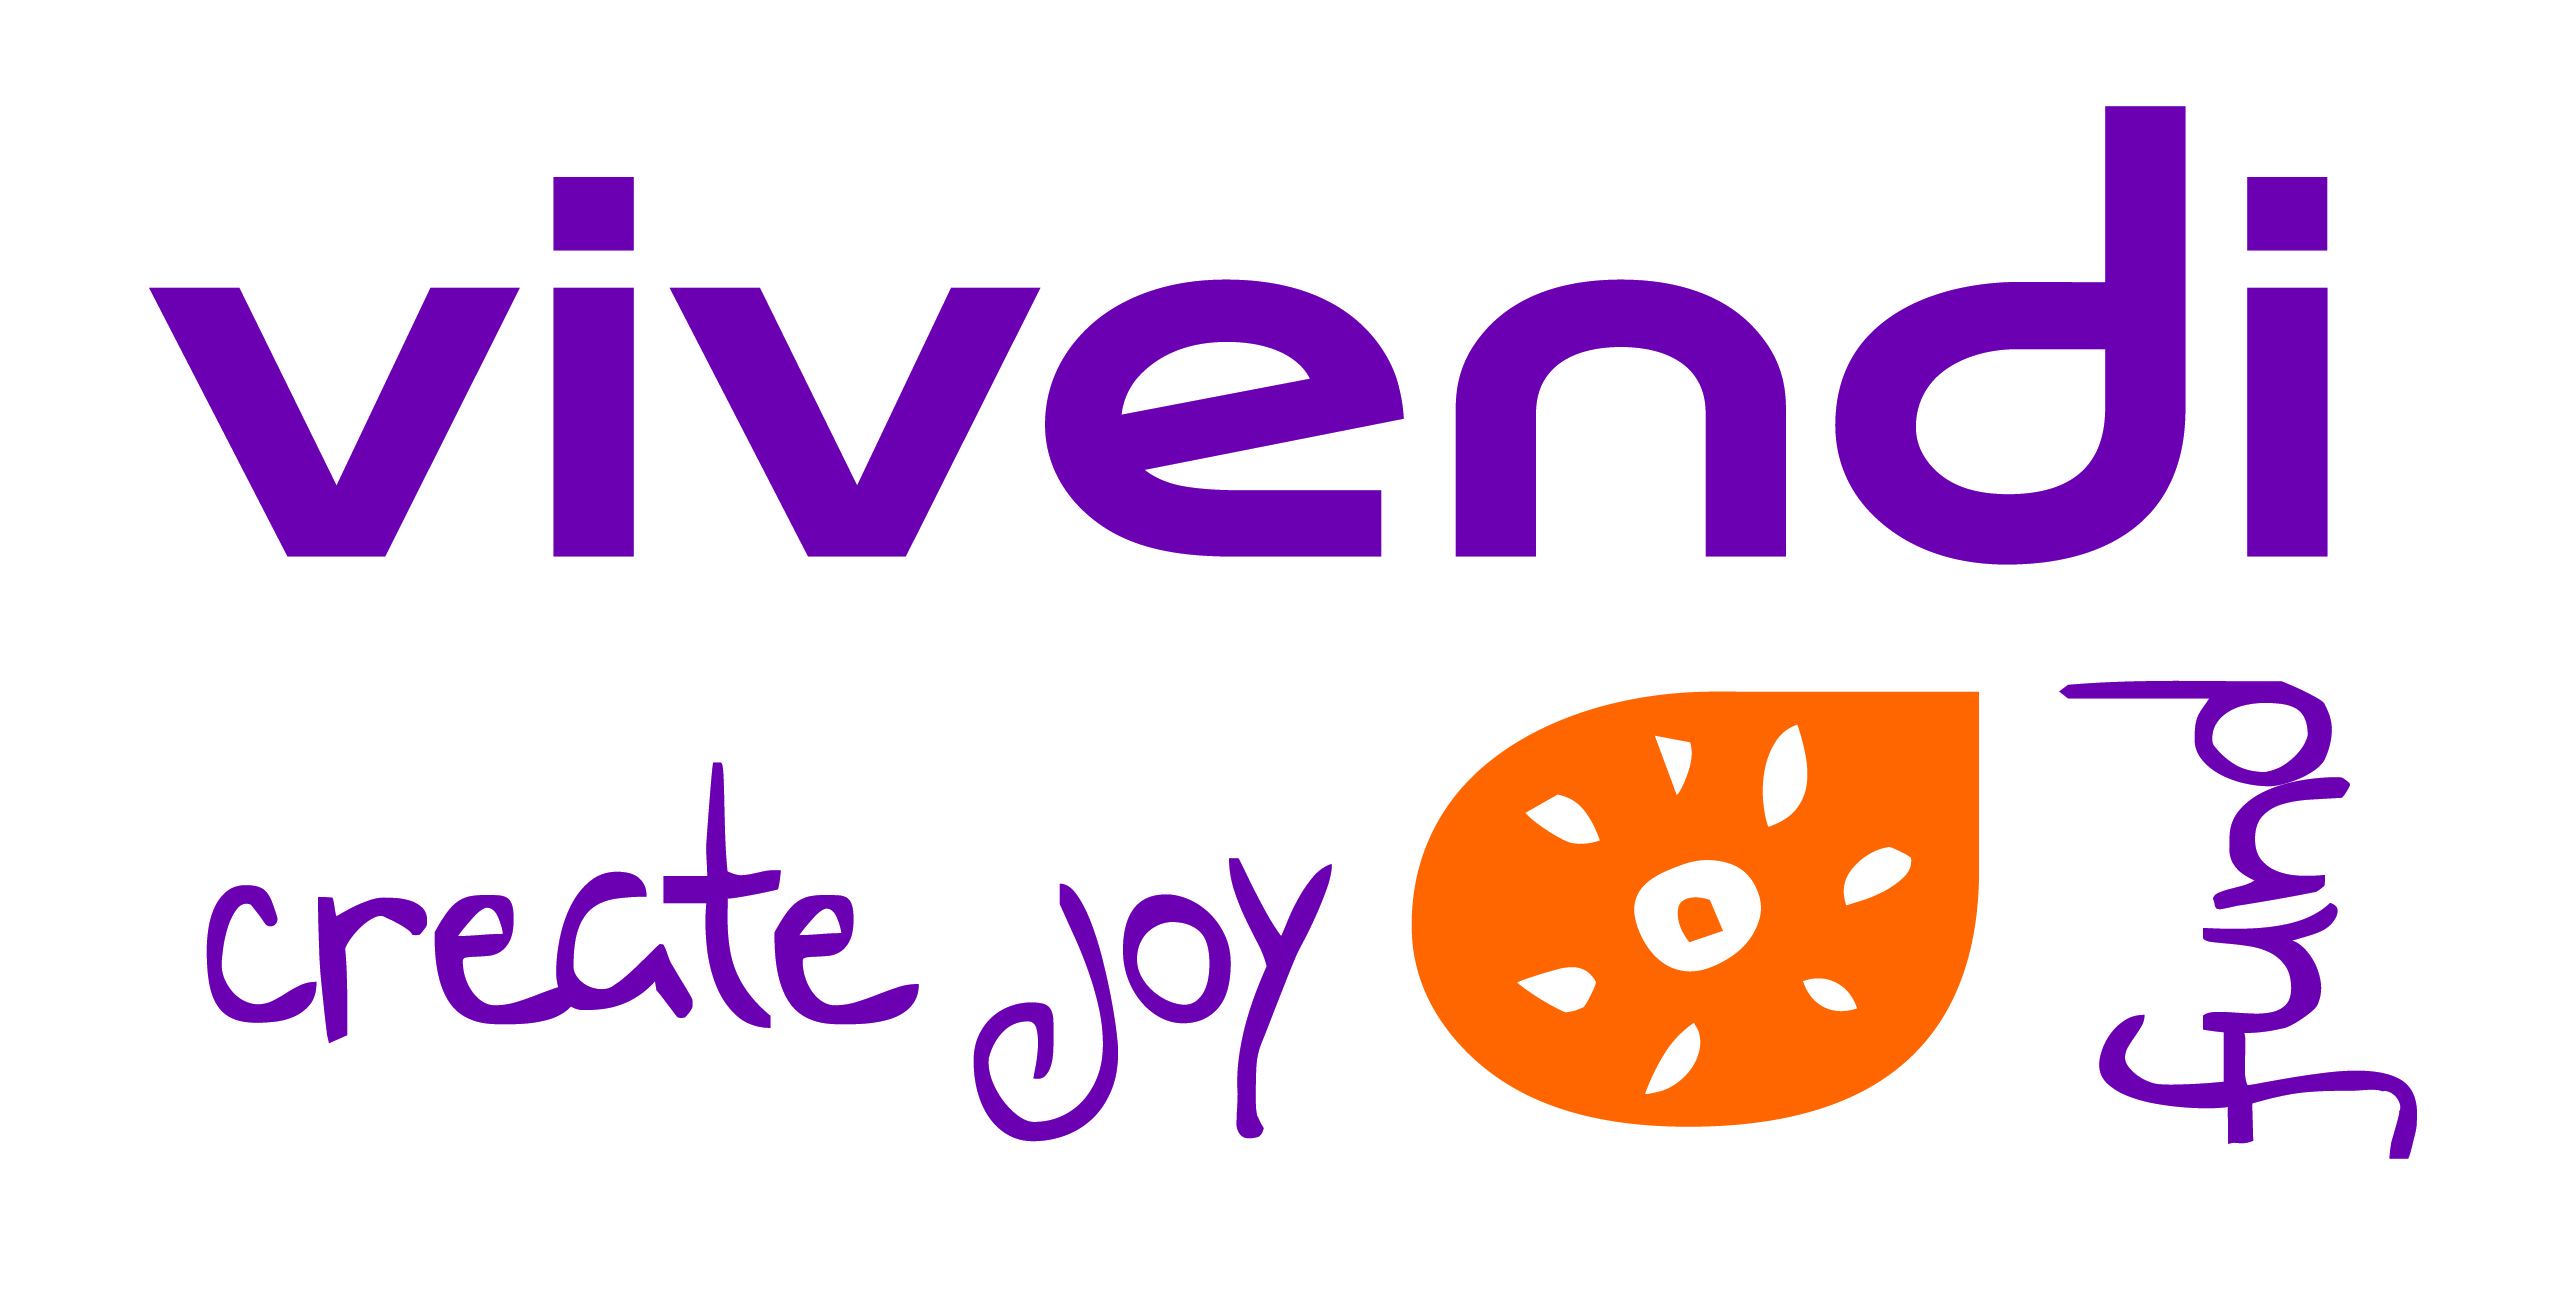 VIVENDI CREATE JOY.jpg